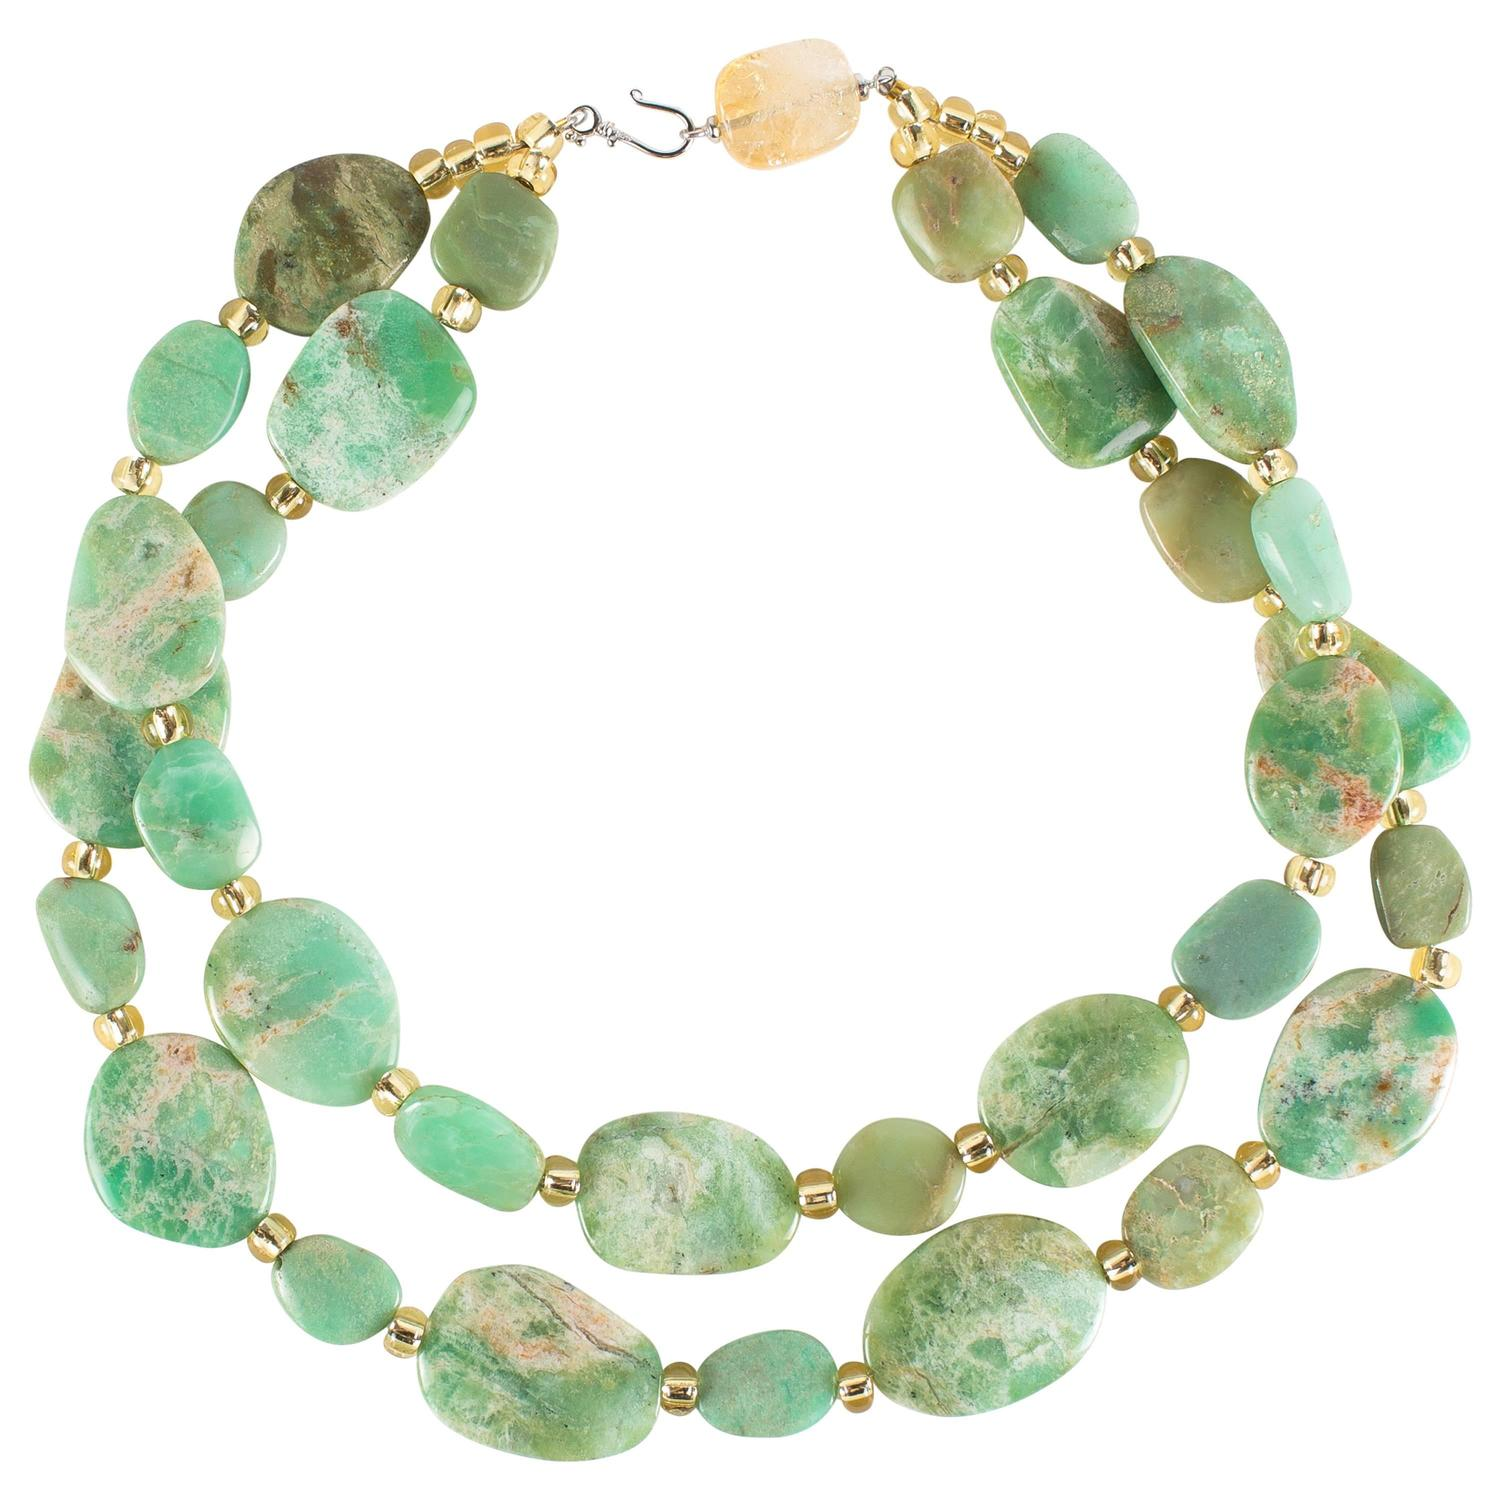 Two Strand Necklace of Flat Polished Chrysoprase Uneven ...